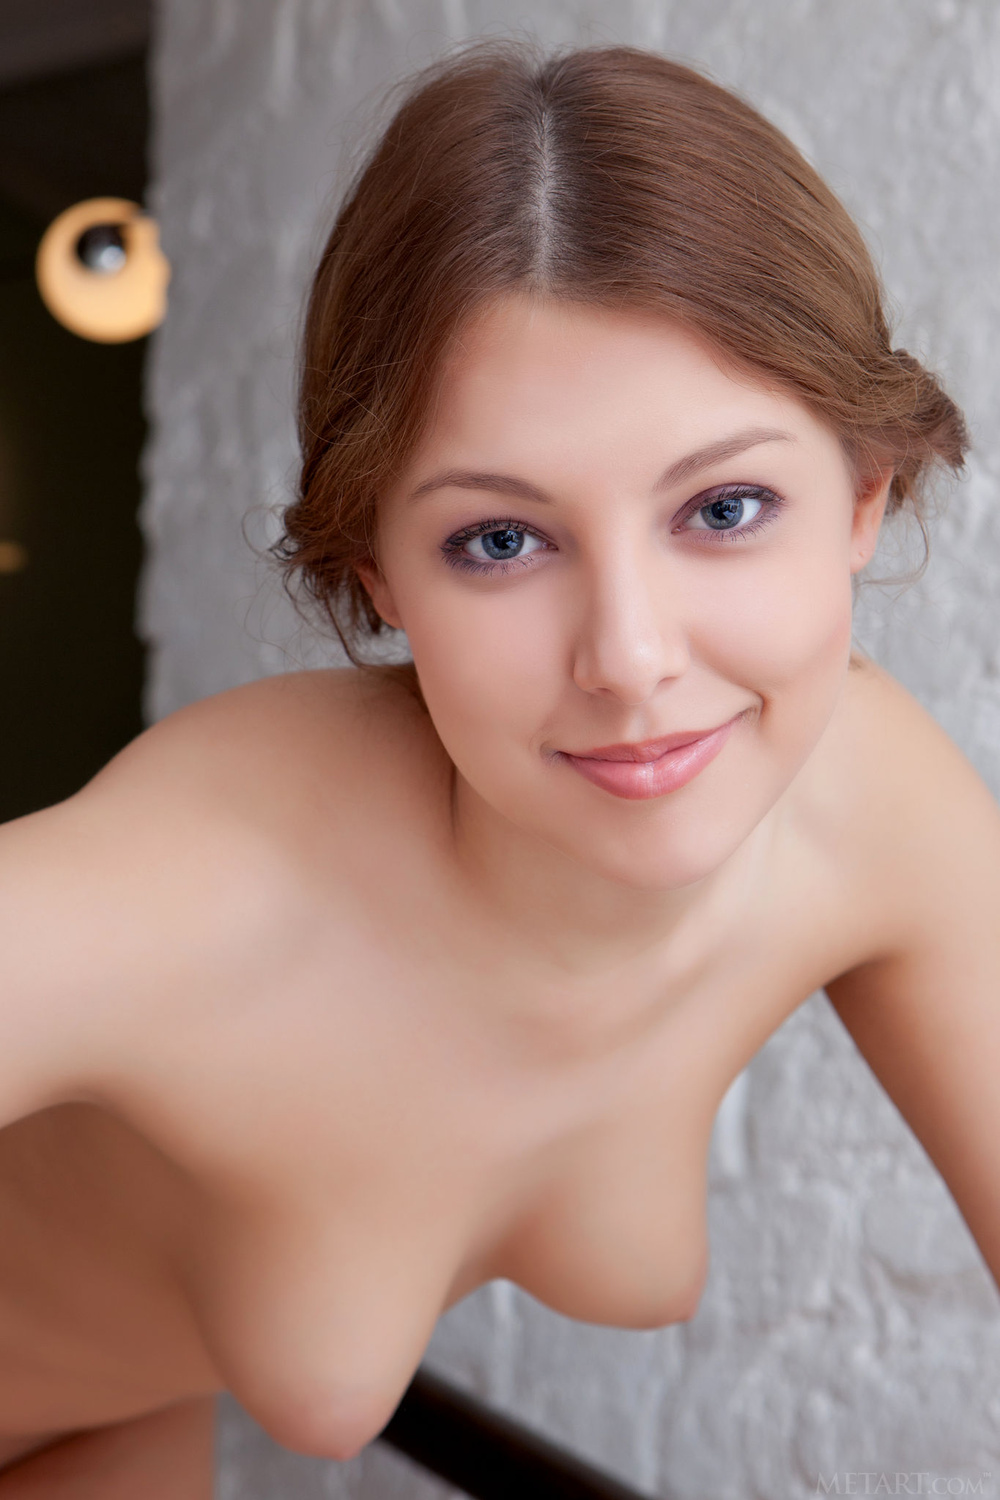 High quality young lady pics egroup, anal lichen planus